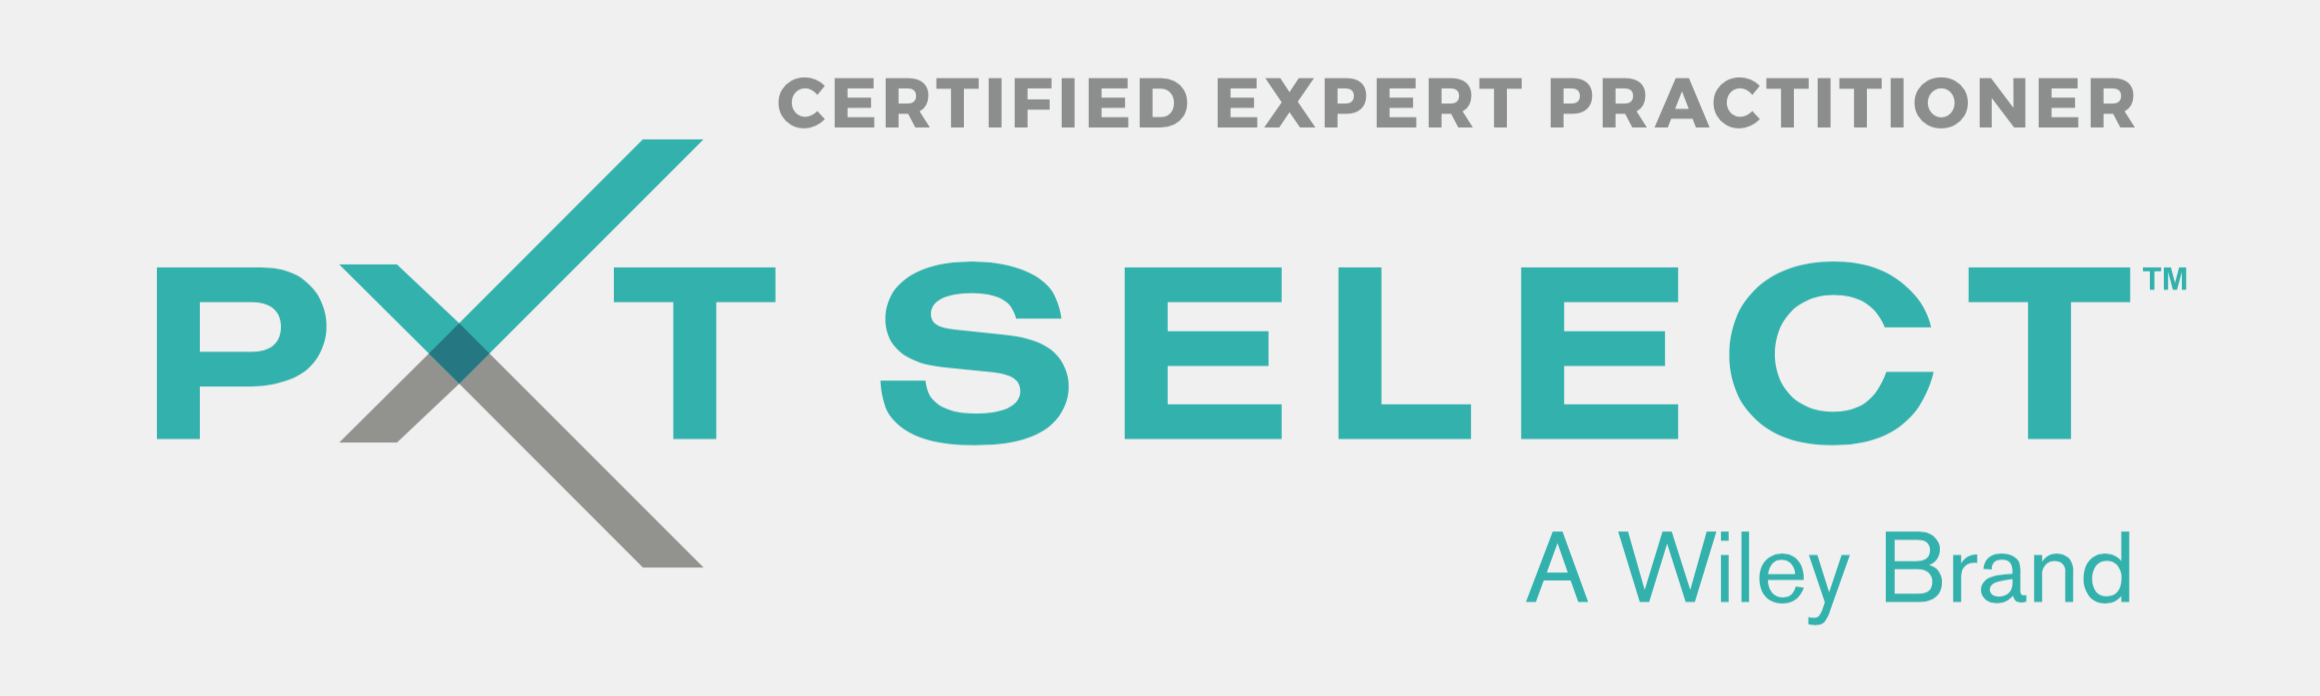 PXT Select Certified Expert Practitioner